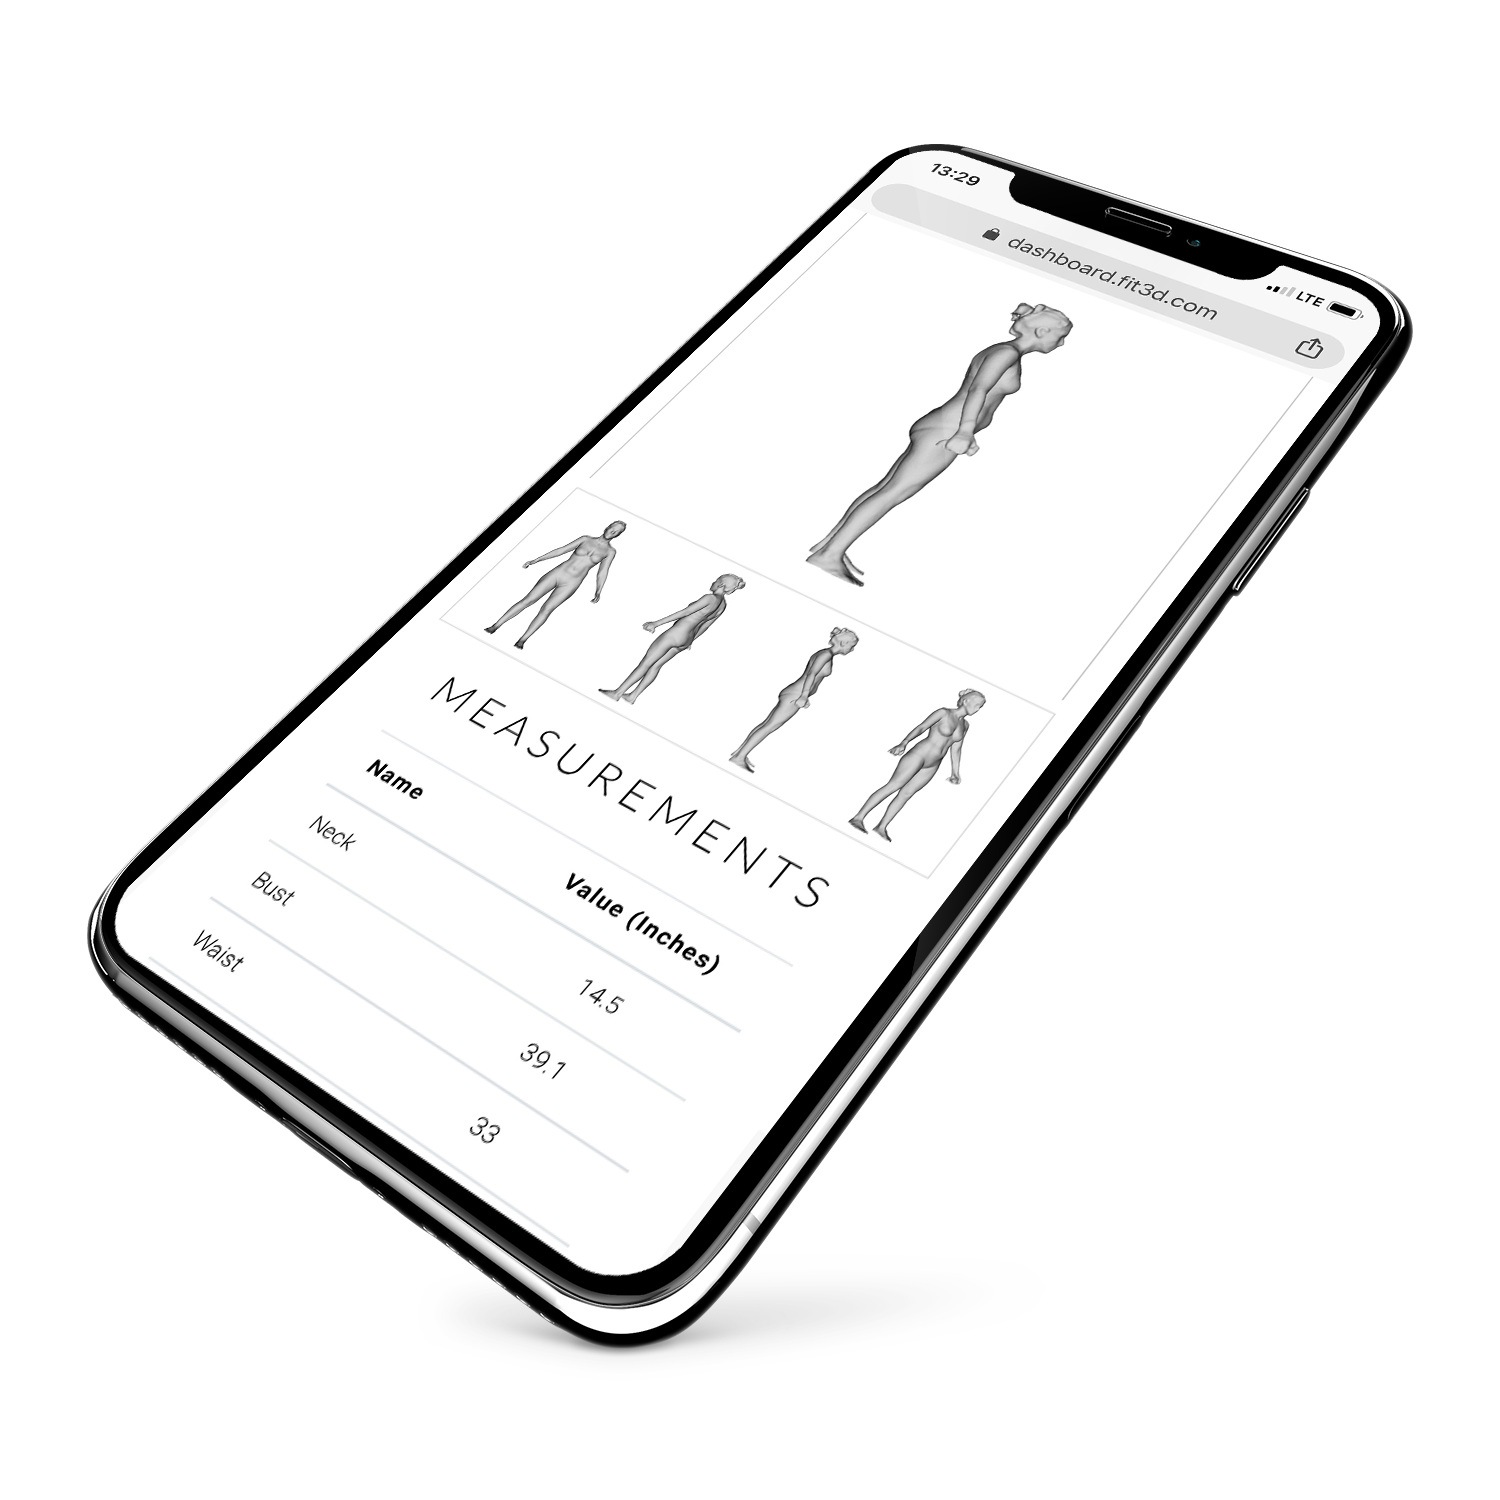 Get the results that matter most to your health and fitness — - Complete Wellness Measurements: Body Shape, Body Composition, Fitness Level, Posture and Balance Report